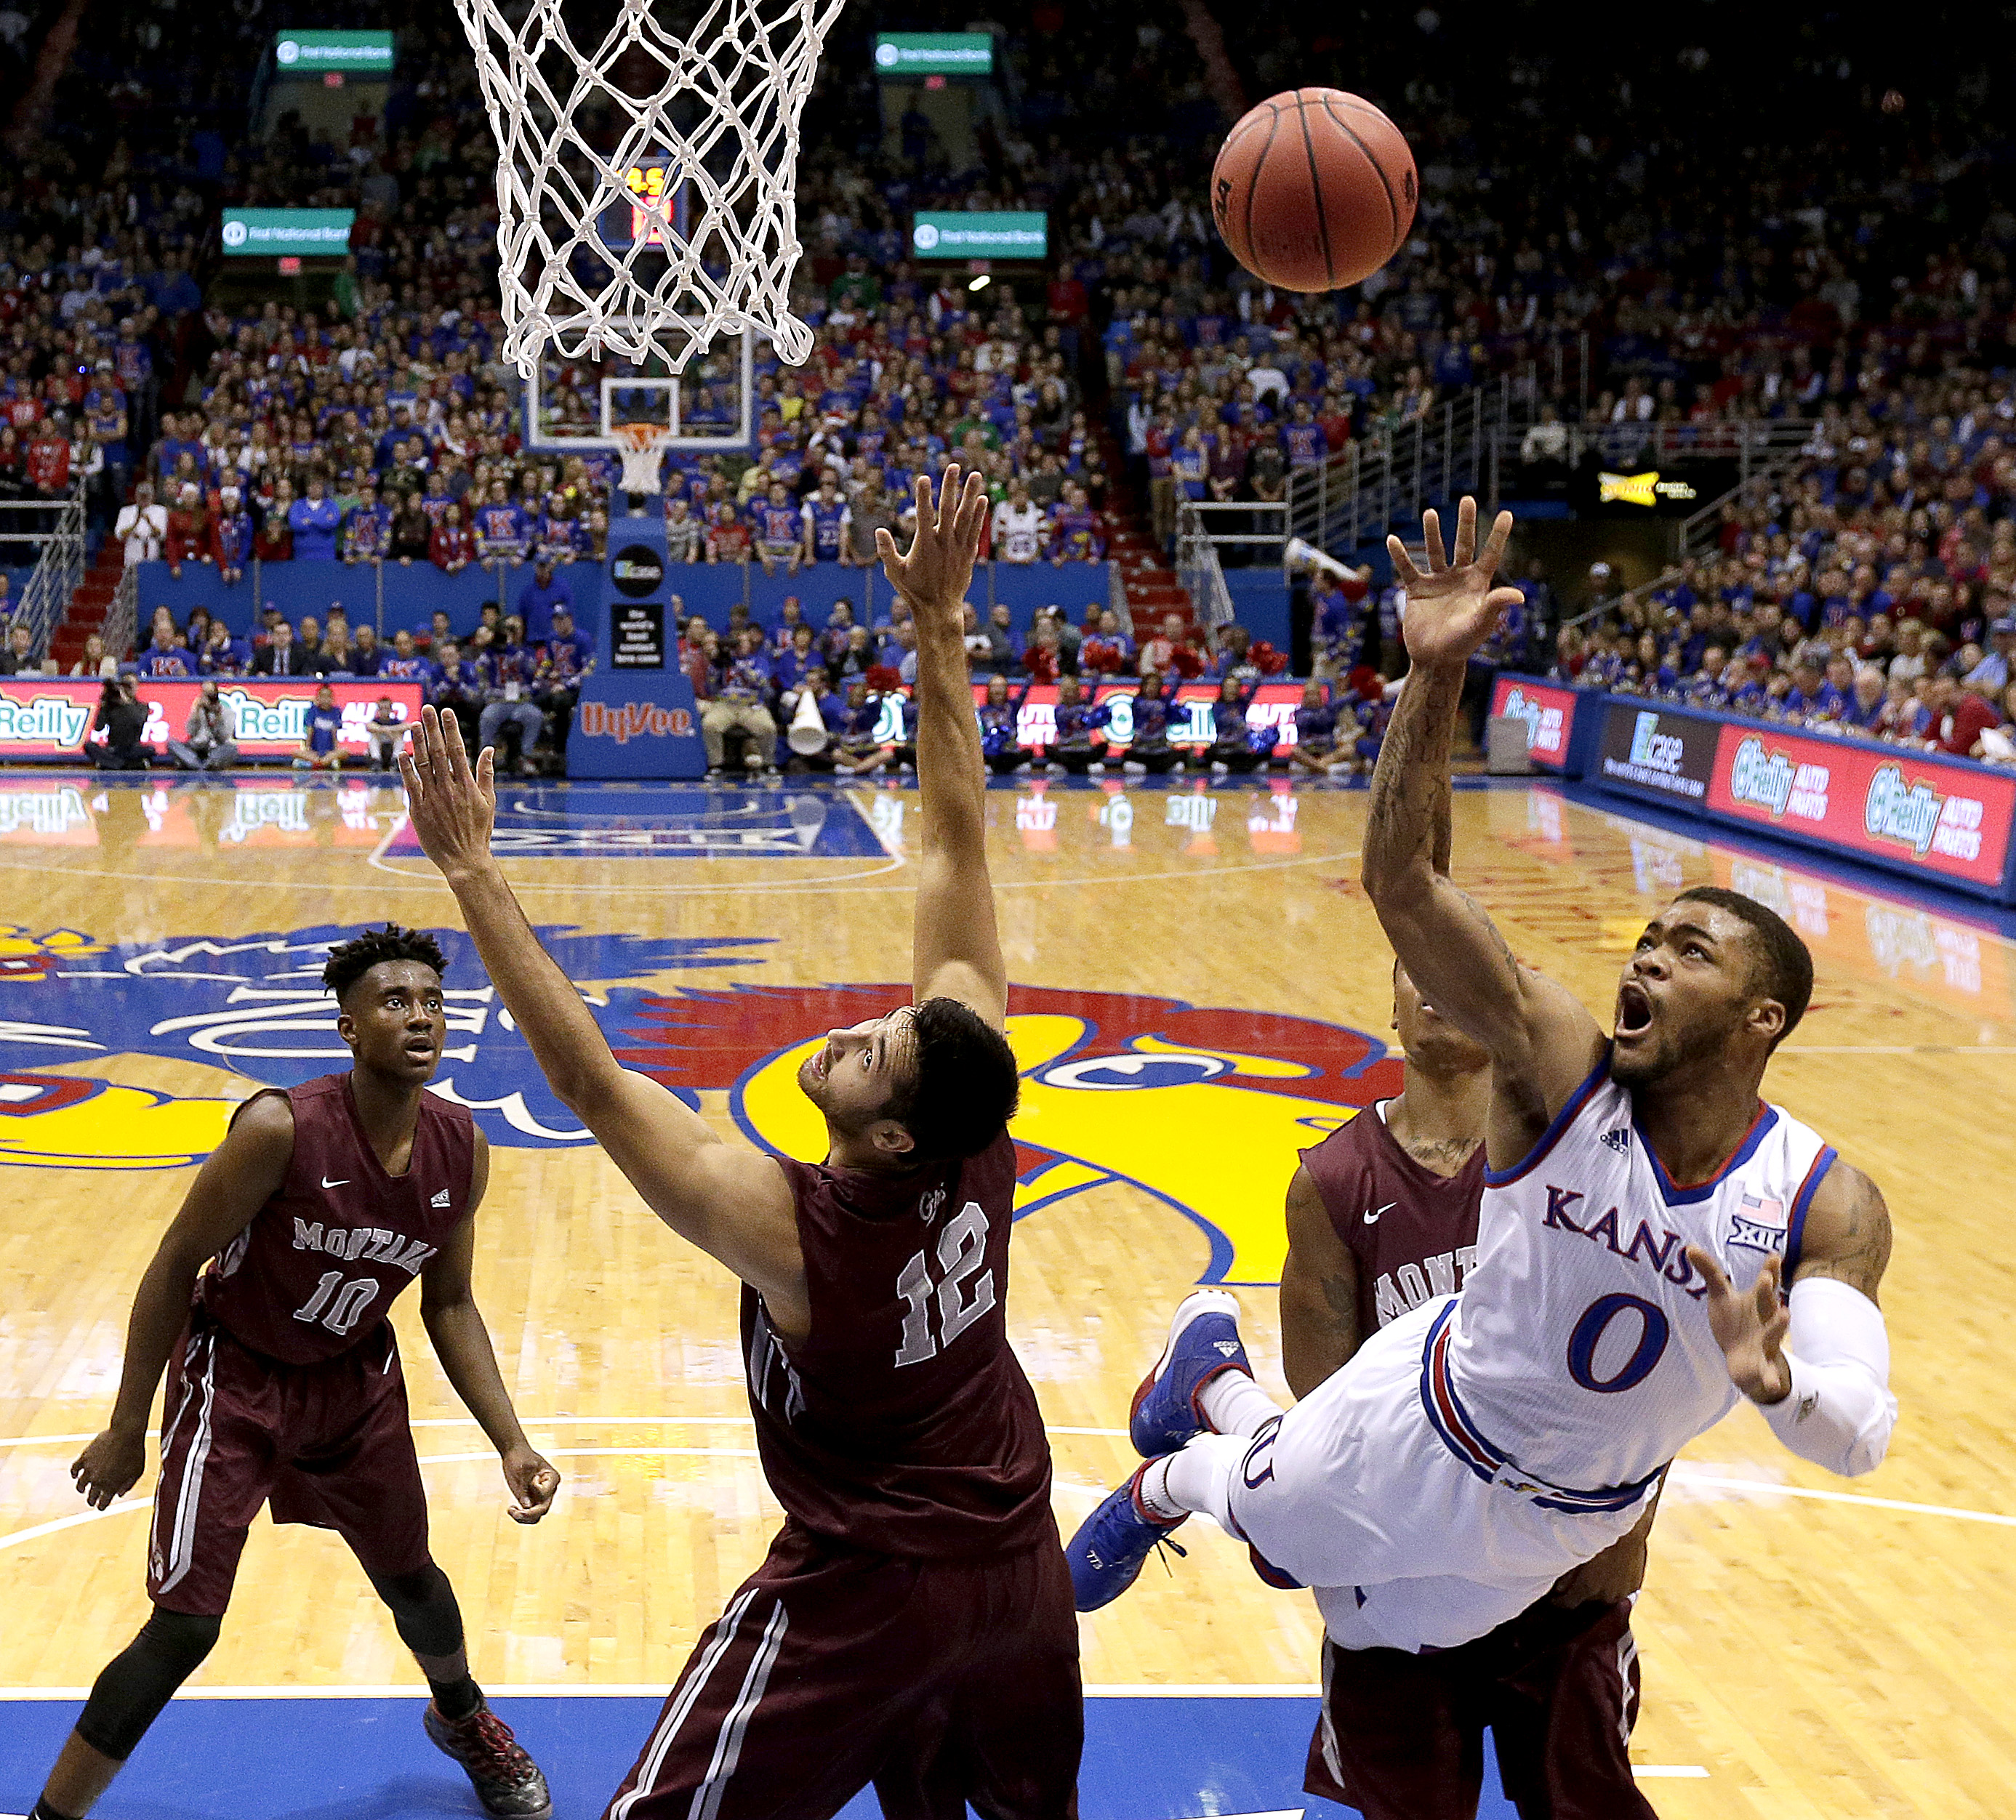 Kansas' Frank Mason III (0) gets past Montana's Martin Breunig (12) to put up a shot during the first half of an NCAA college basketball game Saturday, Dec. 19, 2015, in Lawrence, Kan. (AP Photo/Charlie Riedel)